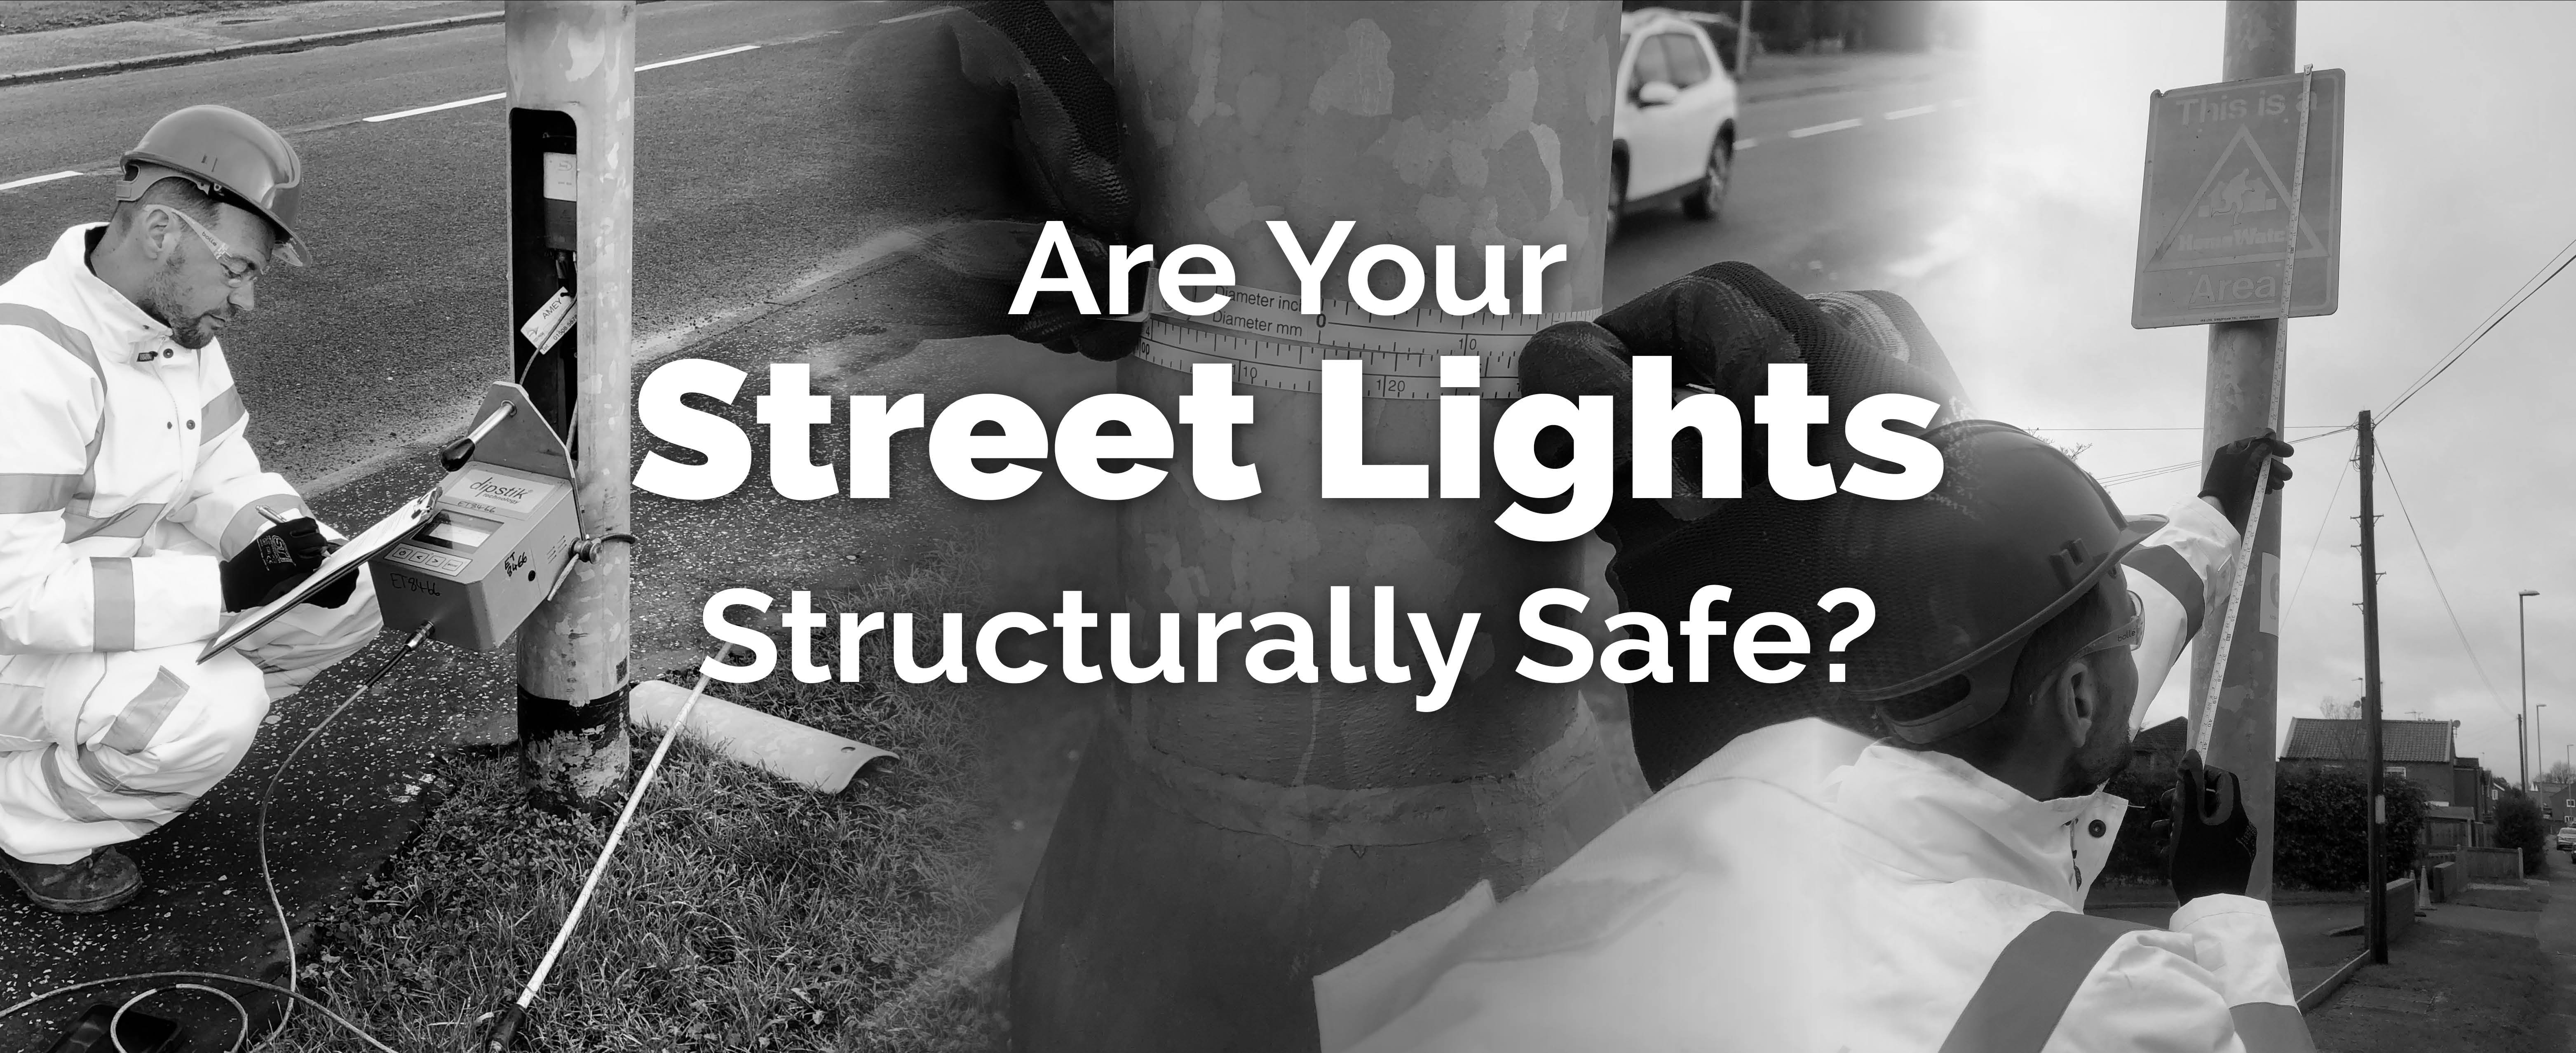 BSEN40 - Are your street lights structurally safe?